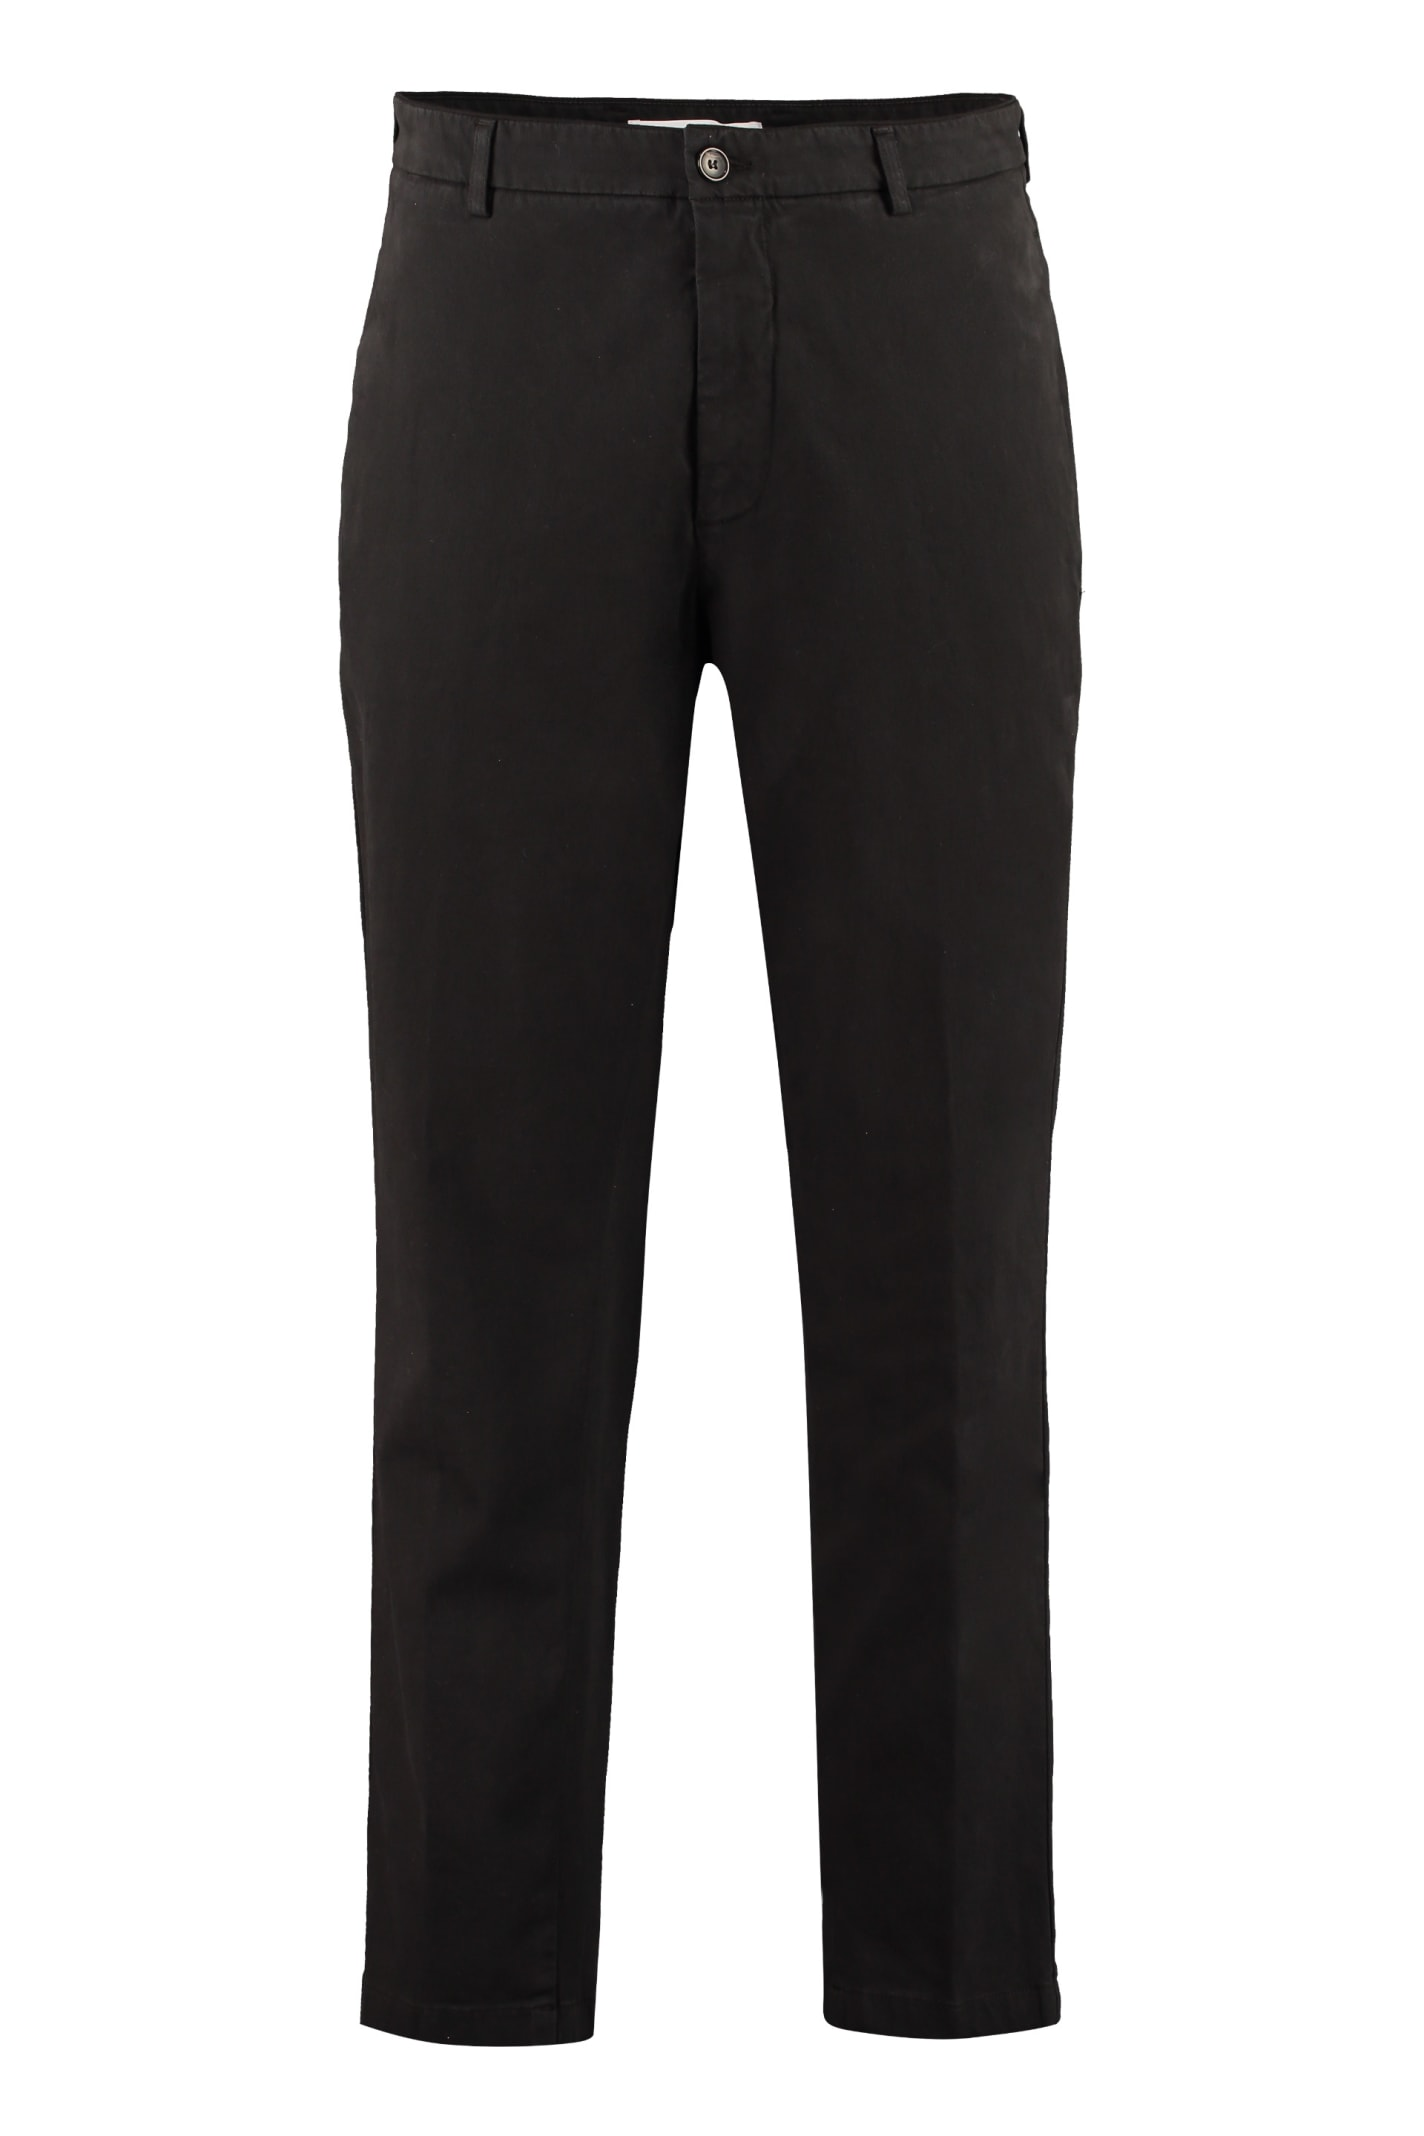 Department 5 George Stretch Cotton Chino Trousers